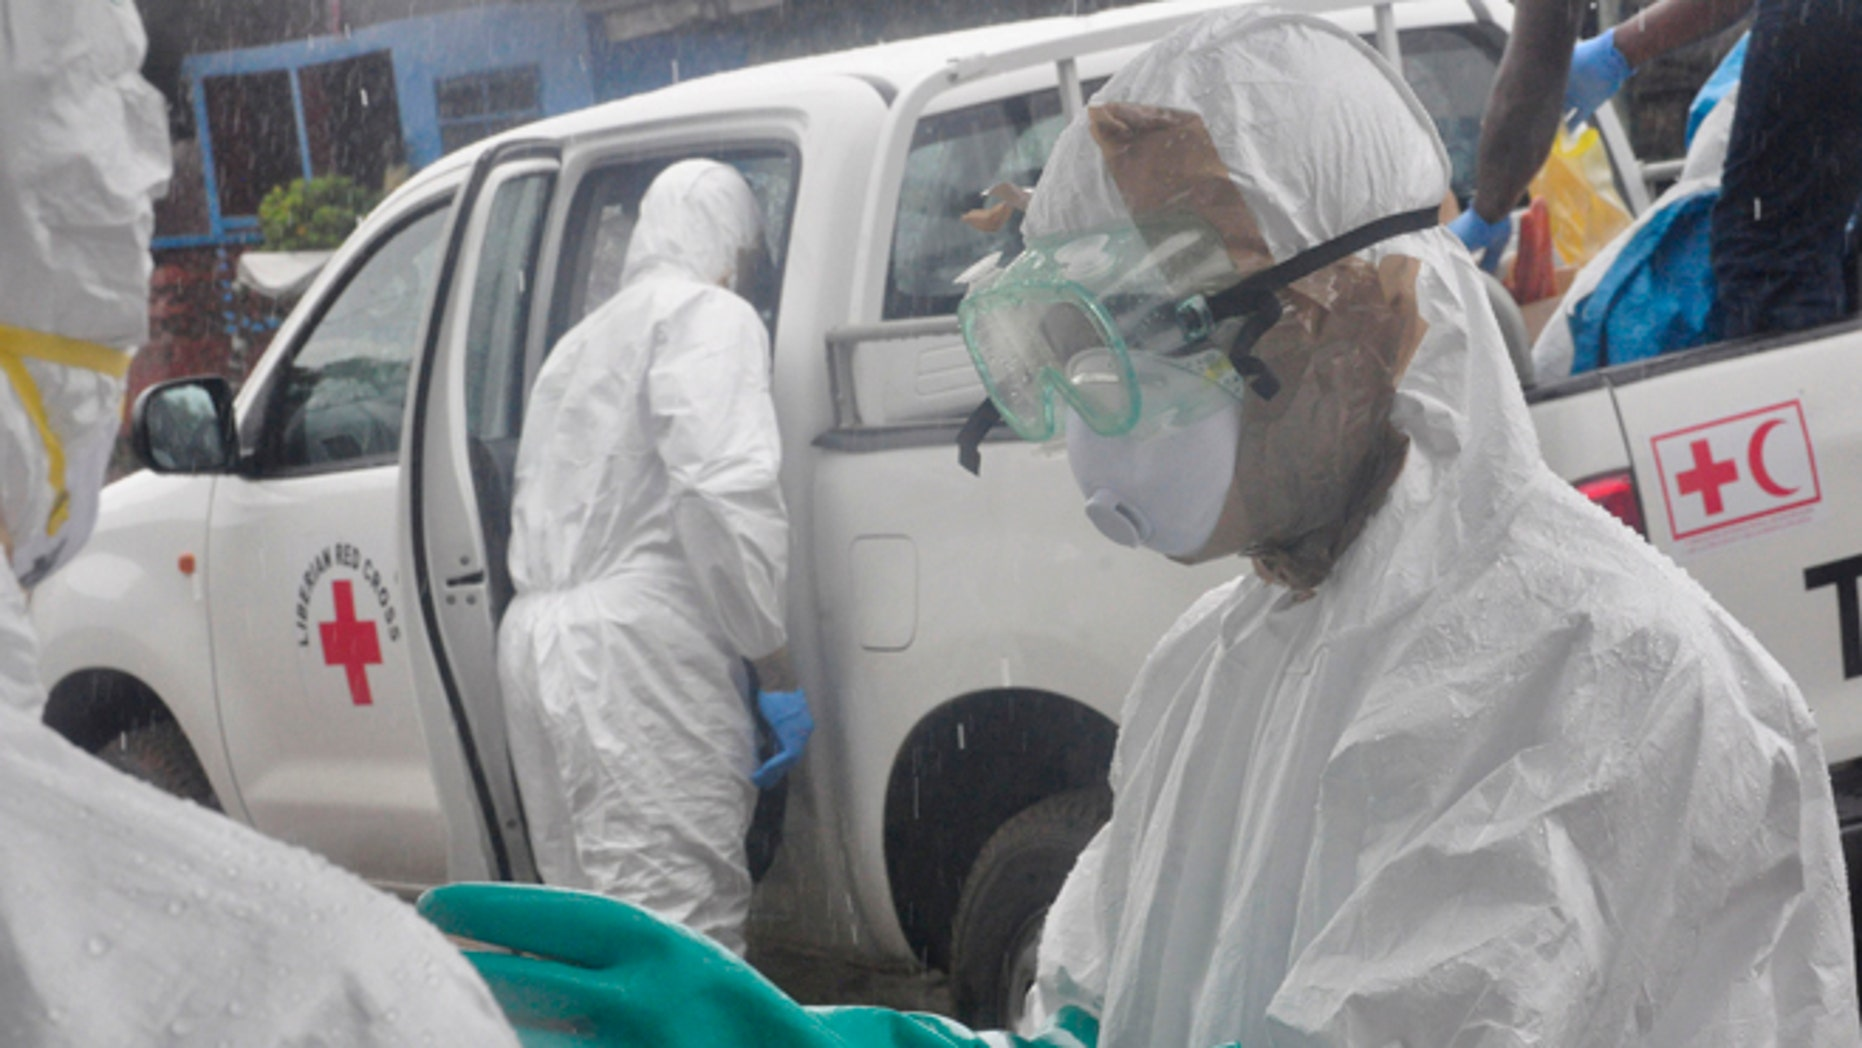 Health workers dressed in protective gear prepare to load the body of a woman suspected to have died from Ebola virus, in New Kru Town at the outskirt of  Monrovia, Liberia, Wednesday, Oct. 8, 2014. Liberia has been among the hardest hit nations at the centre of the long outbreak, which has killed more than 3,000 people, as of Friday, there had been 3,834 confirmed Ebola cases and 2,069 deaths in Liberia, according to the World Health Organization. Forty-four percent of the Ebola cases were reported in the past three weeks, a signal that the infectious disease is spreading.(AP Photo/Abbas Dulleh)